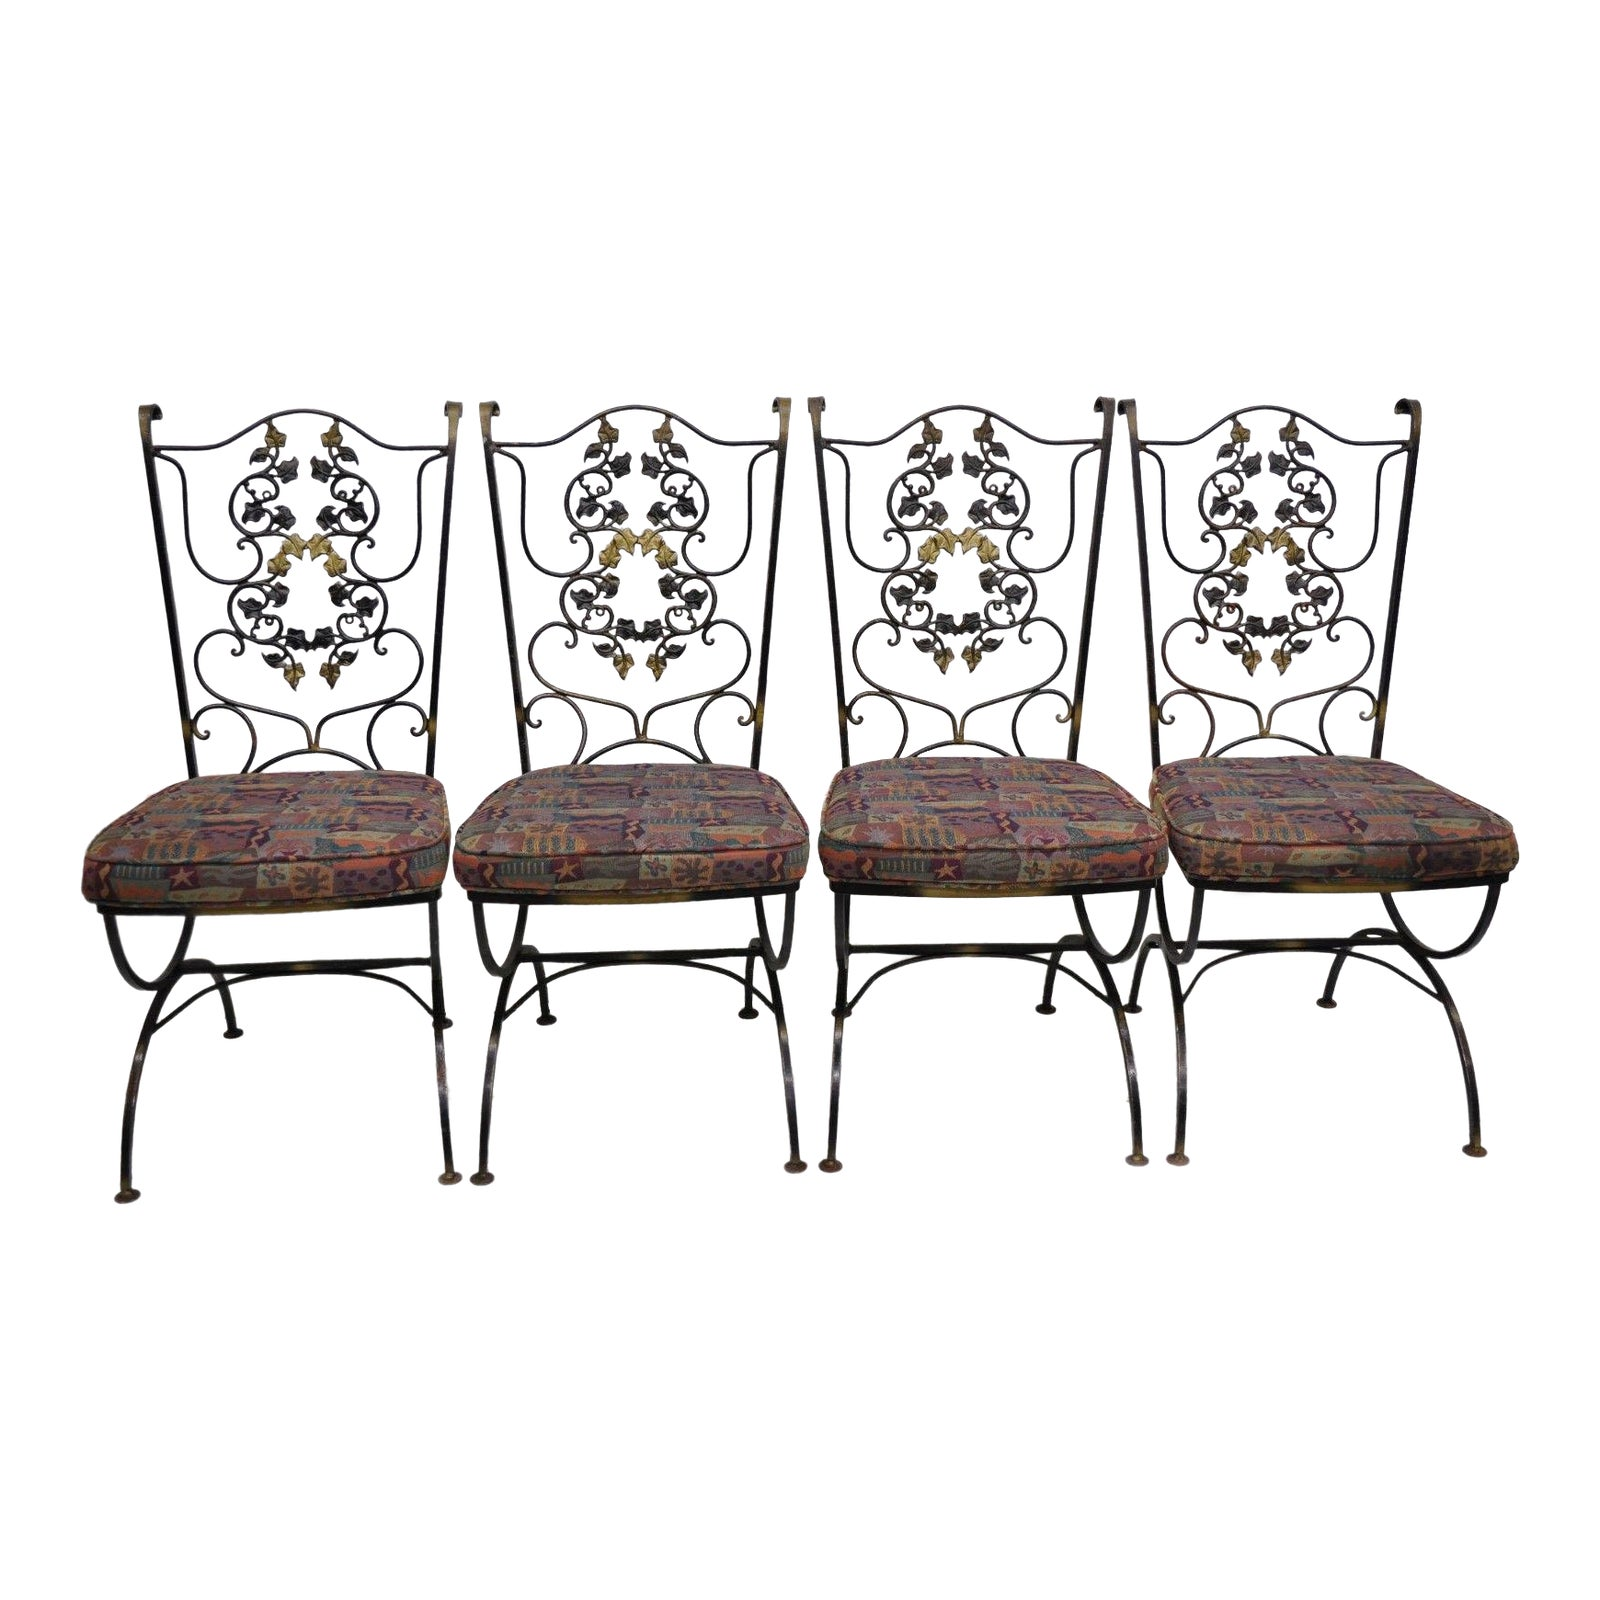 Vintage Woodard Wrought Iron Black Gold Scrolling Leaf Patio